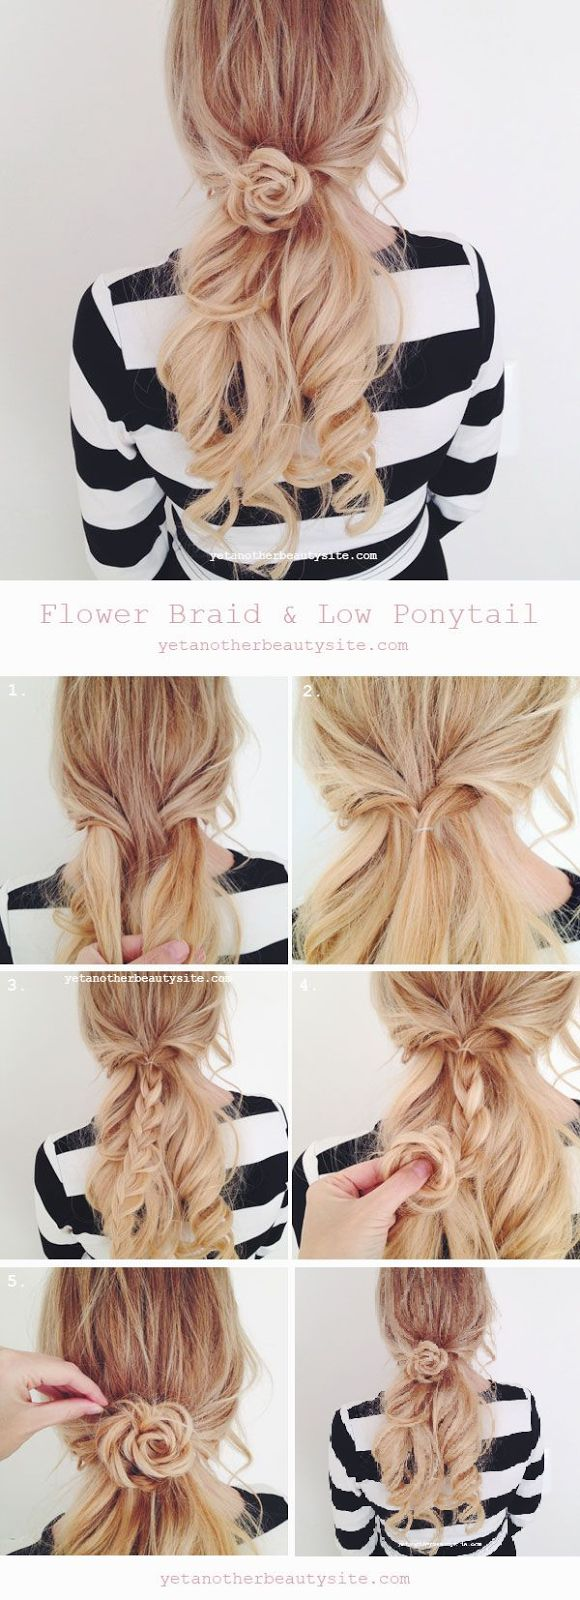 Braided Flower Hairstyle Flower girl UpDo fashion hair sublim